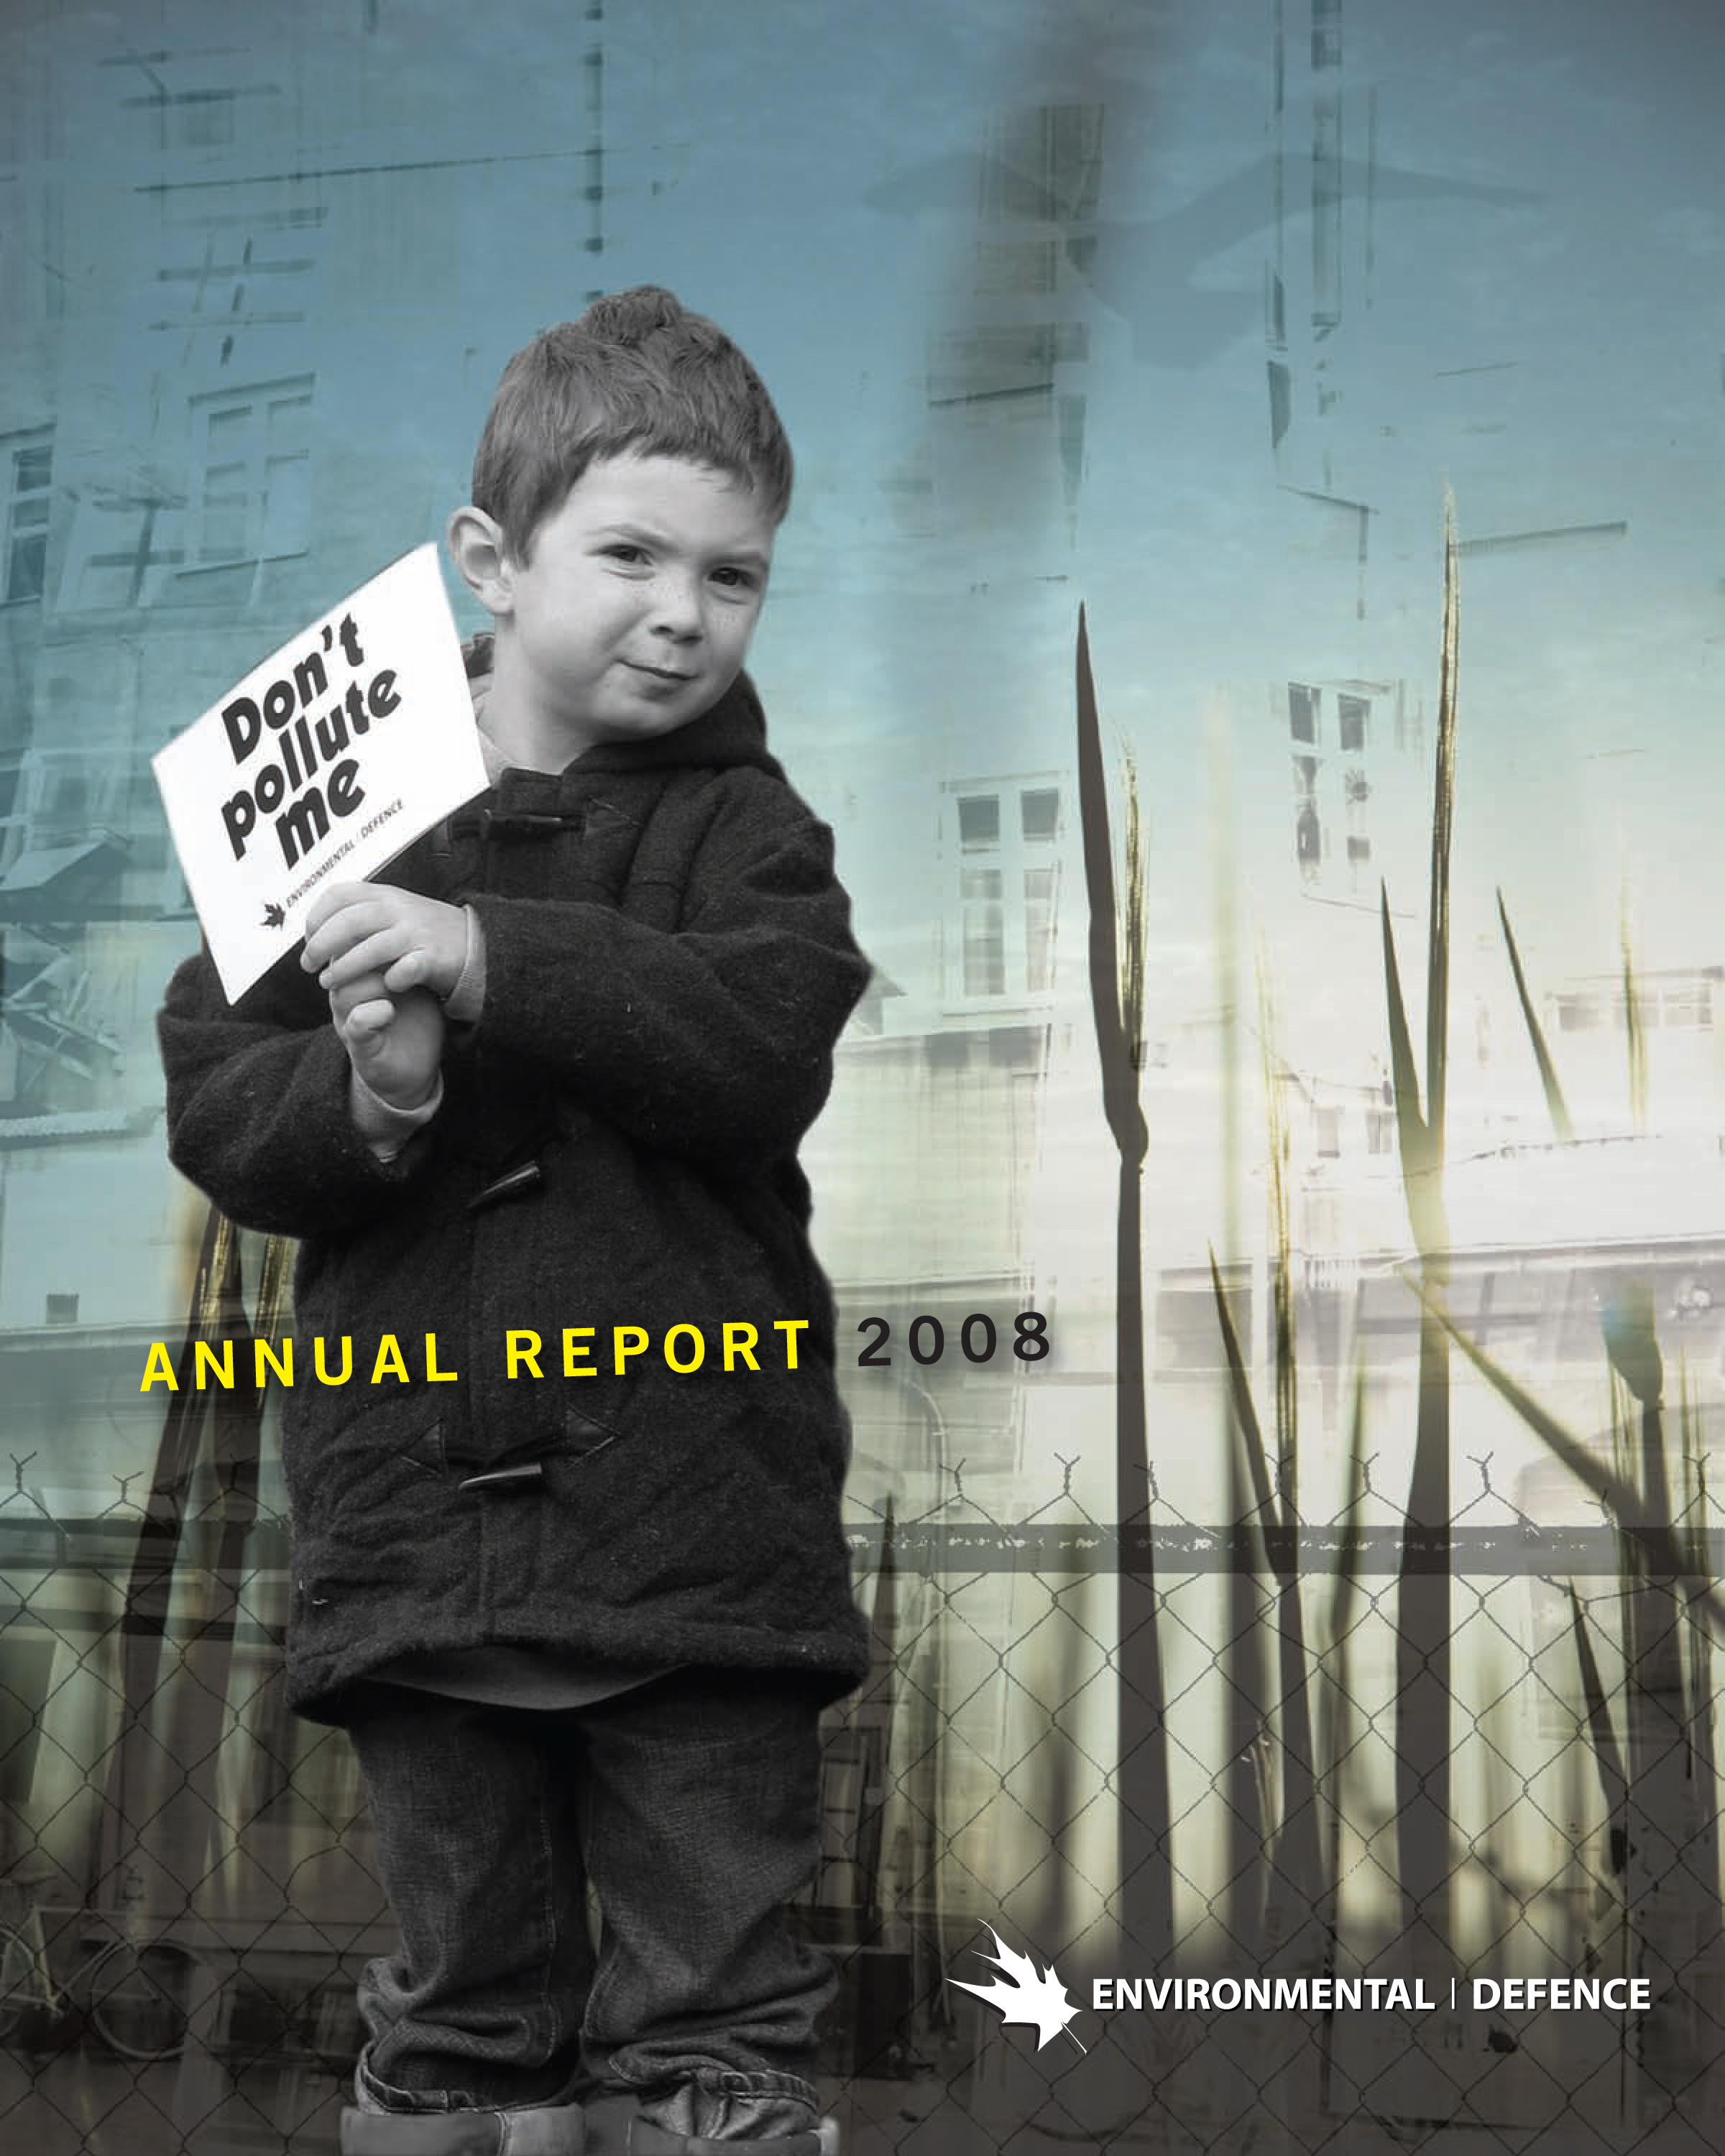 ED_AnnualReport08Cover.jpg